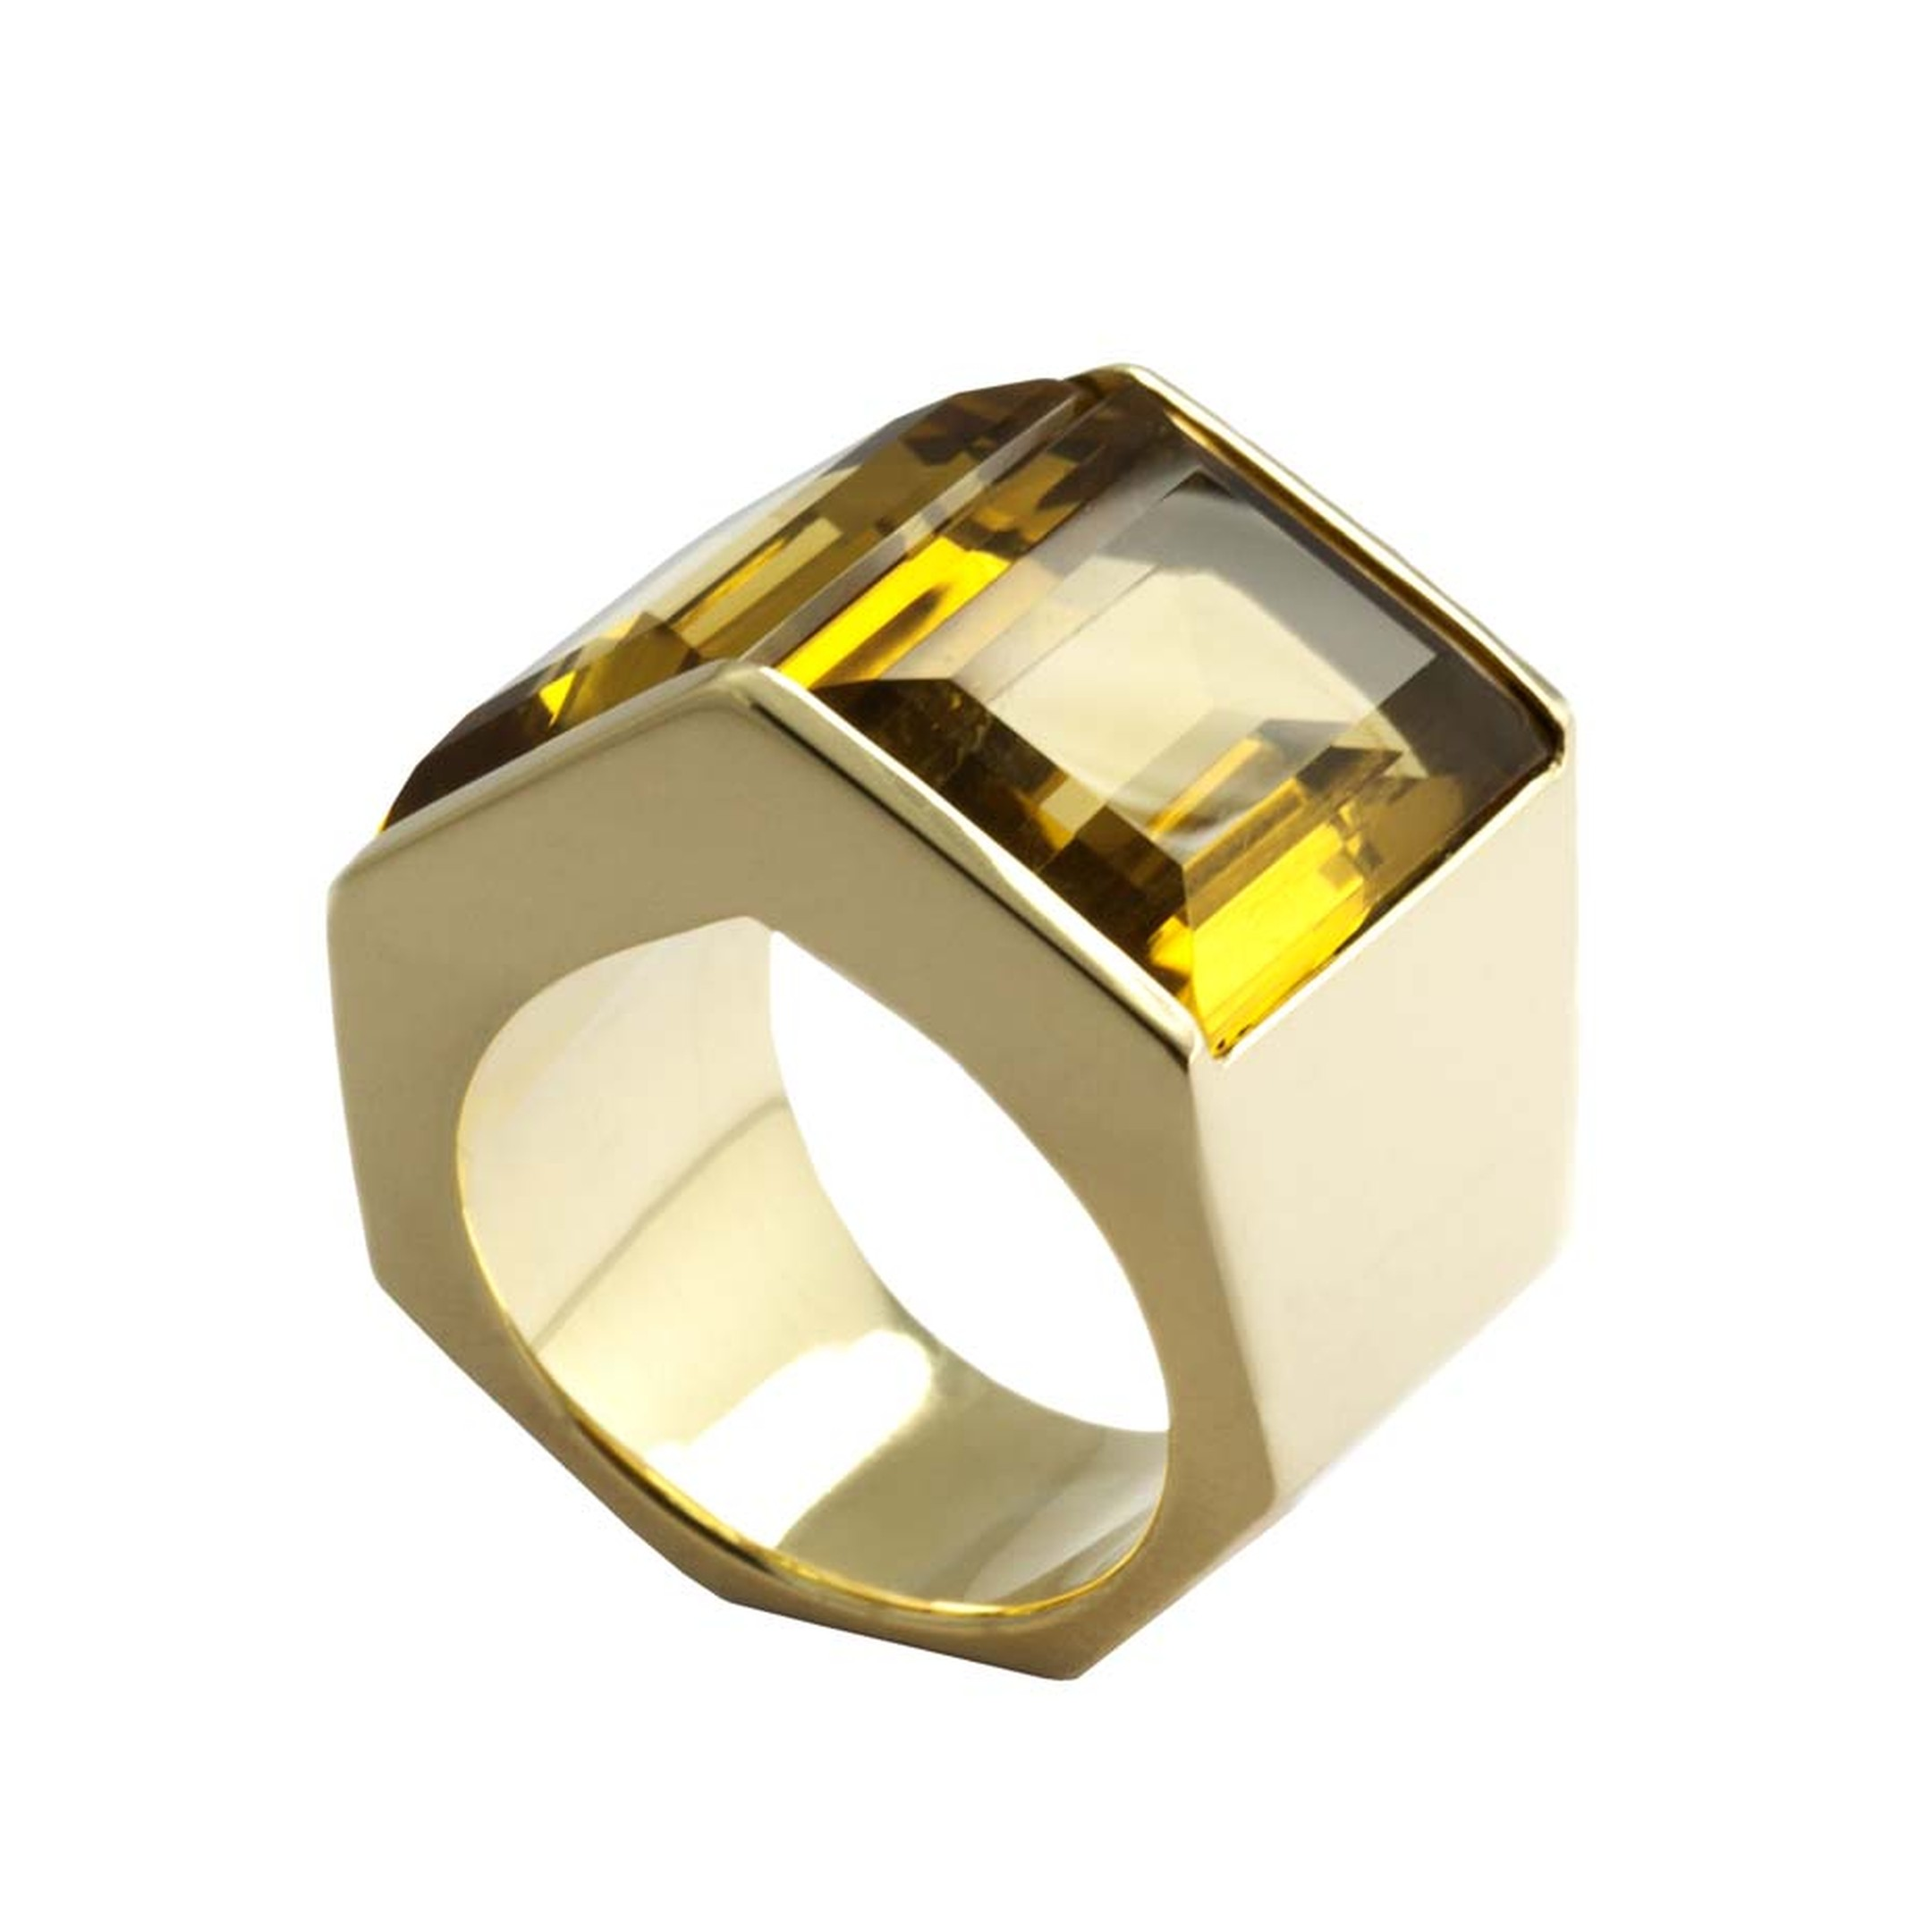 Kattri Polygon Tall yellow gold and citrine ring (£4,550).